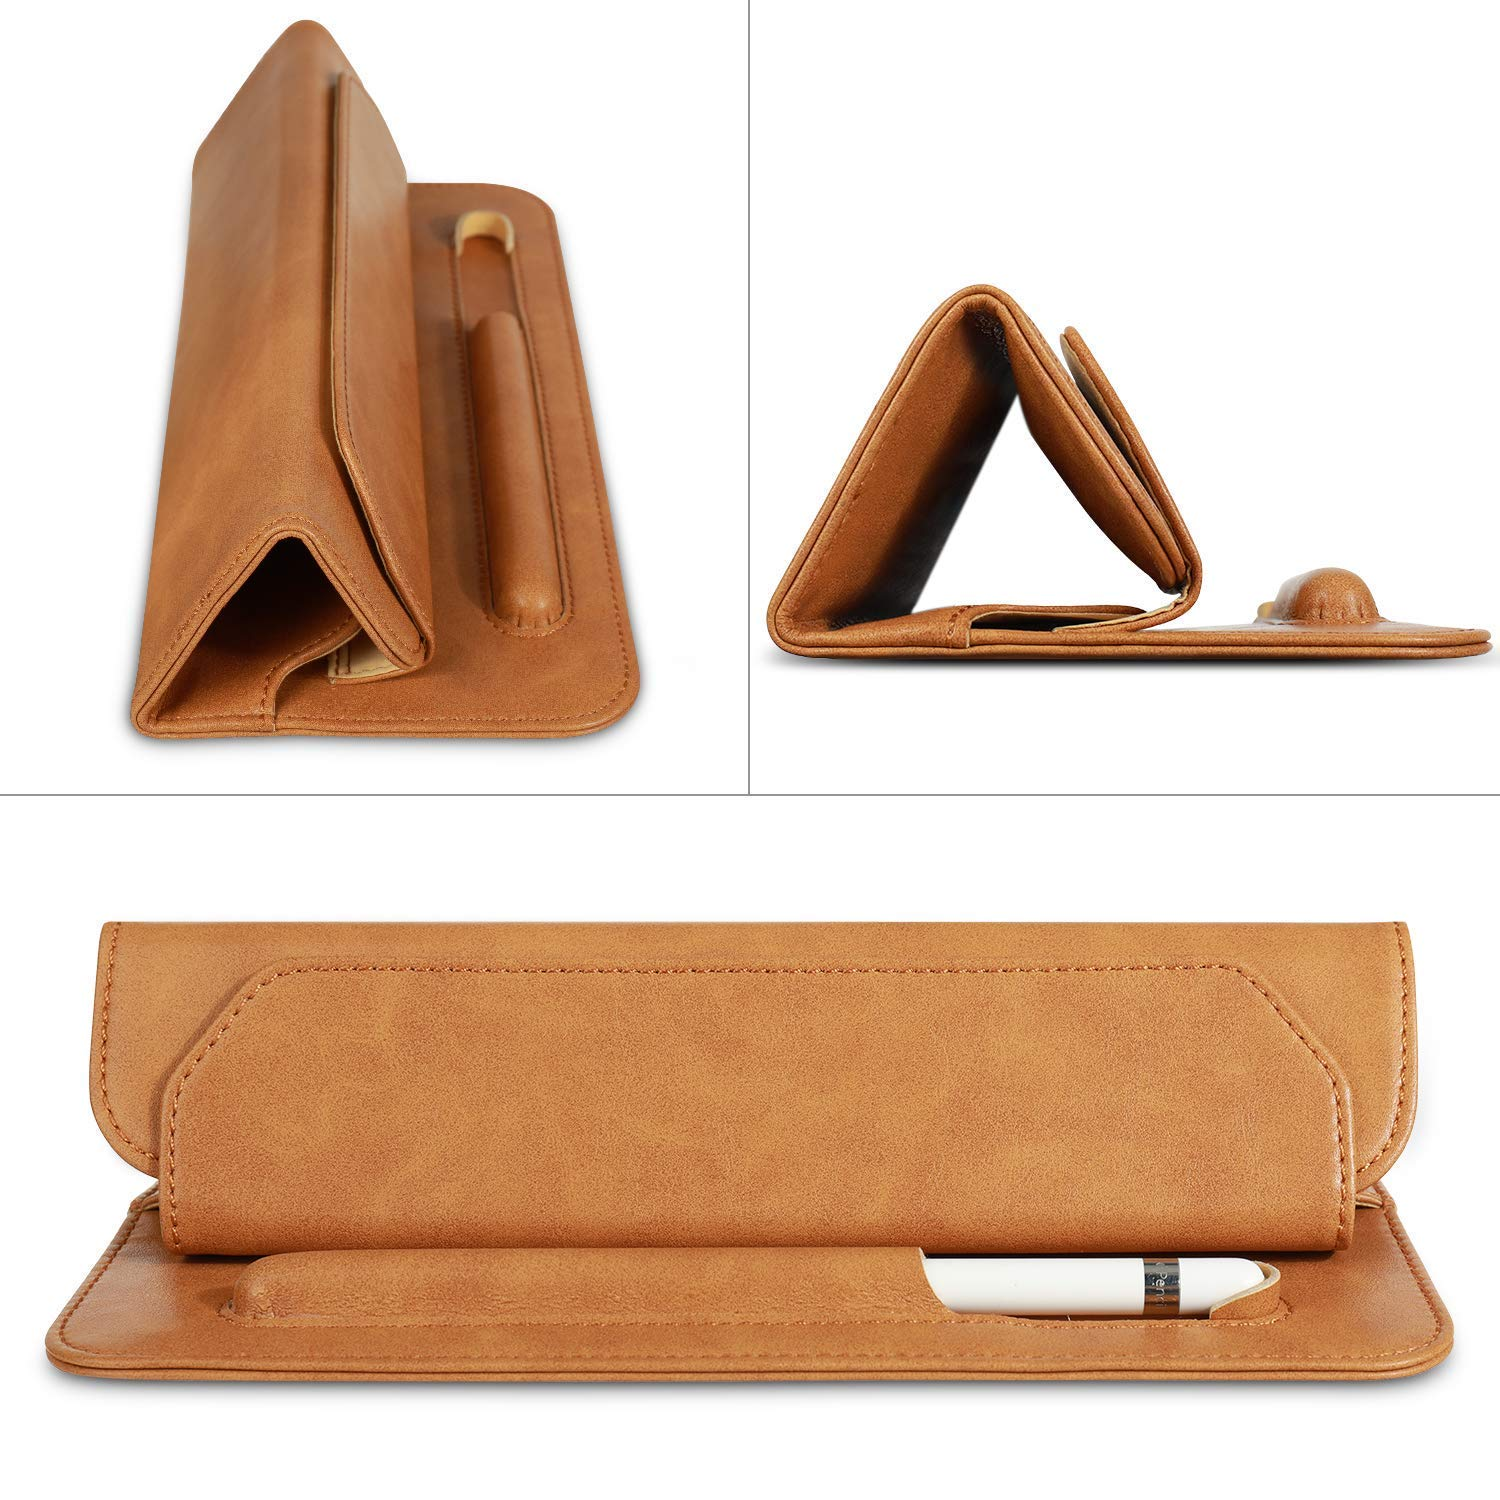 Hcyang iPad Mini 5 Case Leather Soft Microfiber Slim Leather Thin 7.9 inch Tablet Sleeve Bag with Pencil Holder Trifold Case for Apple iPad Mini 5th Generation 2019 Brown